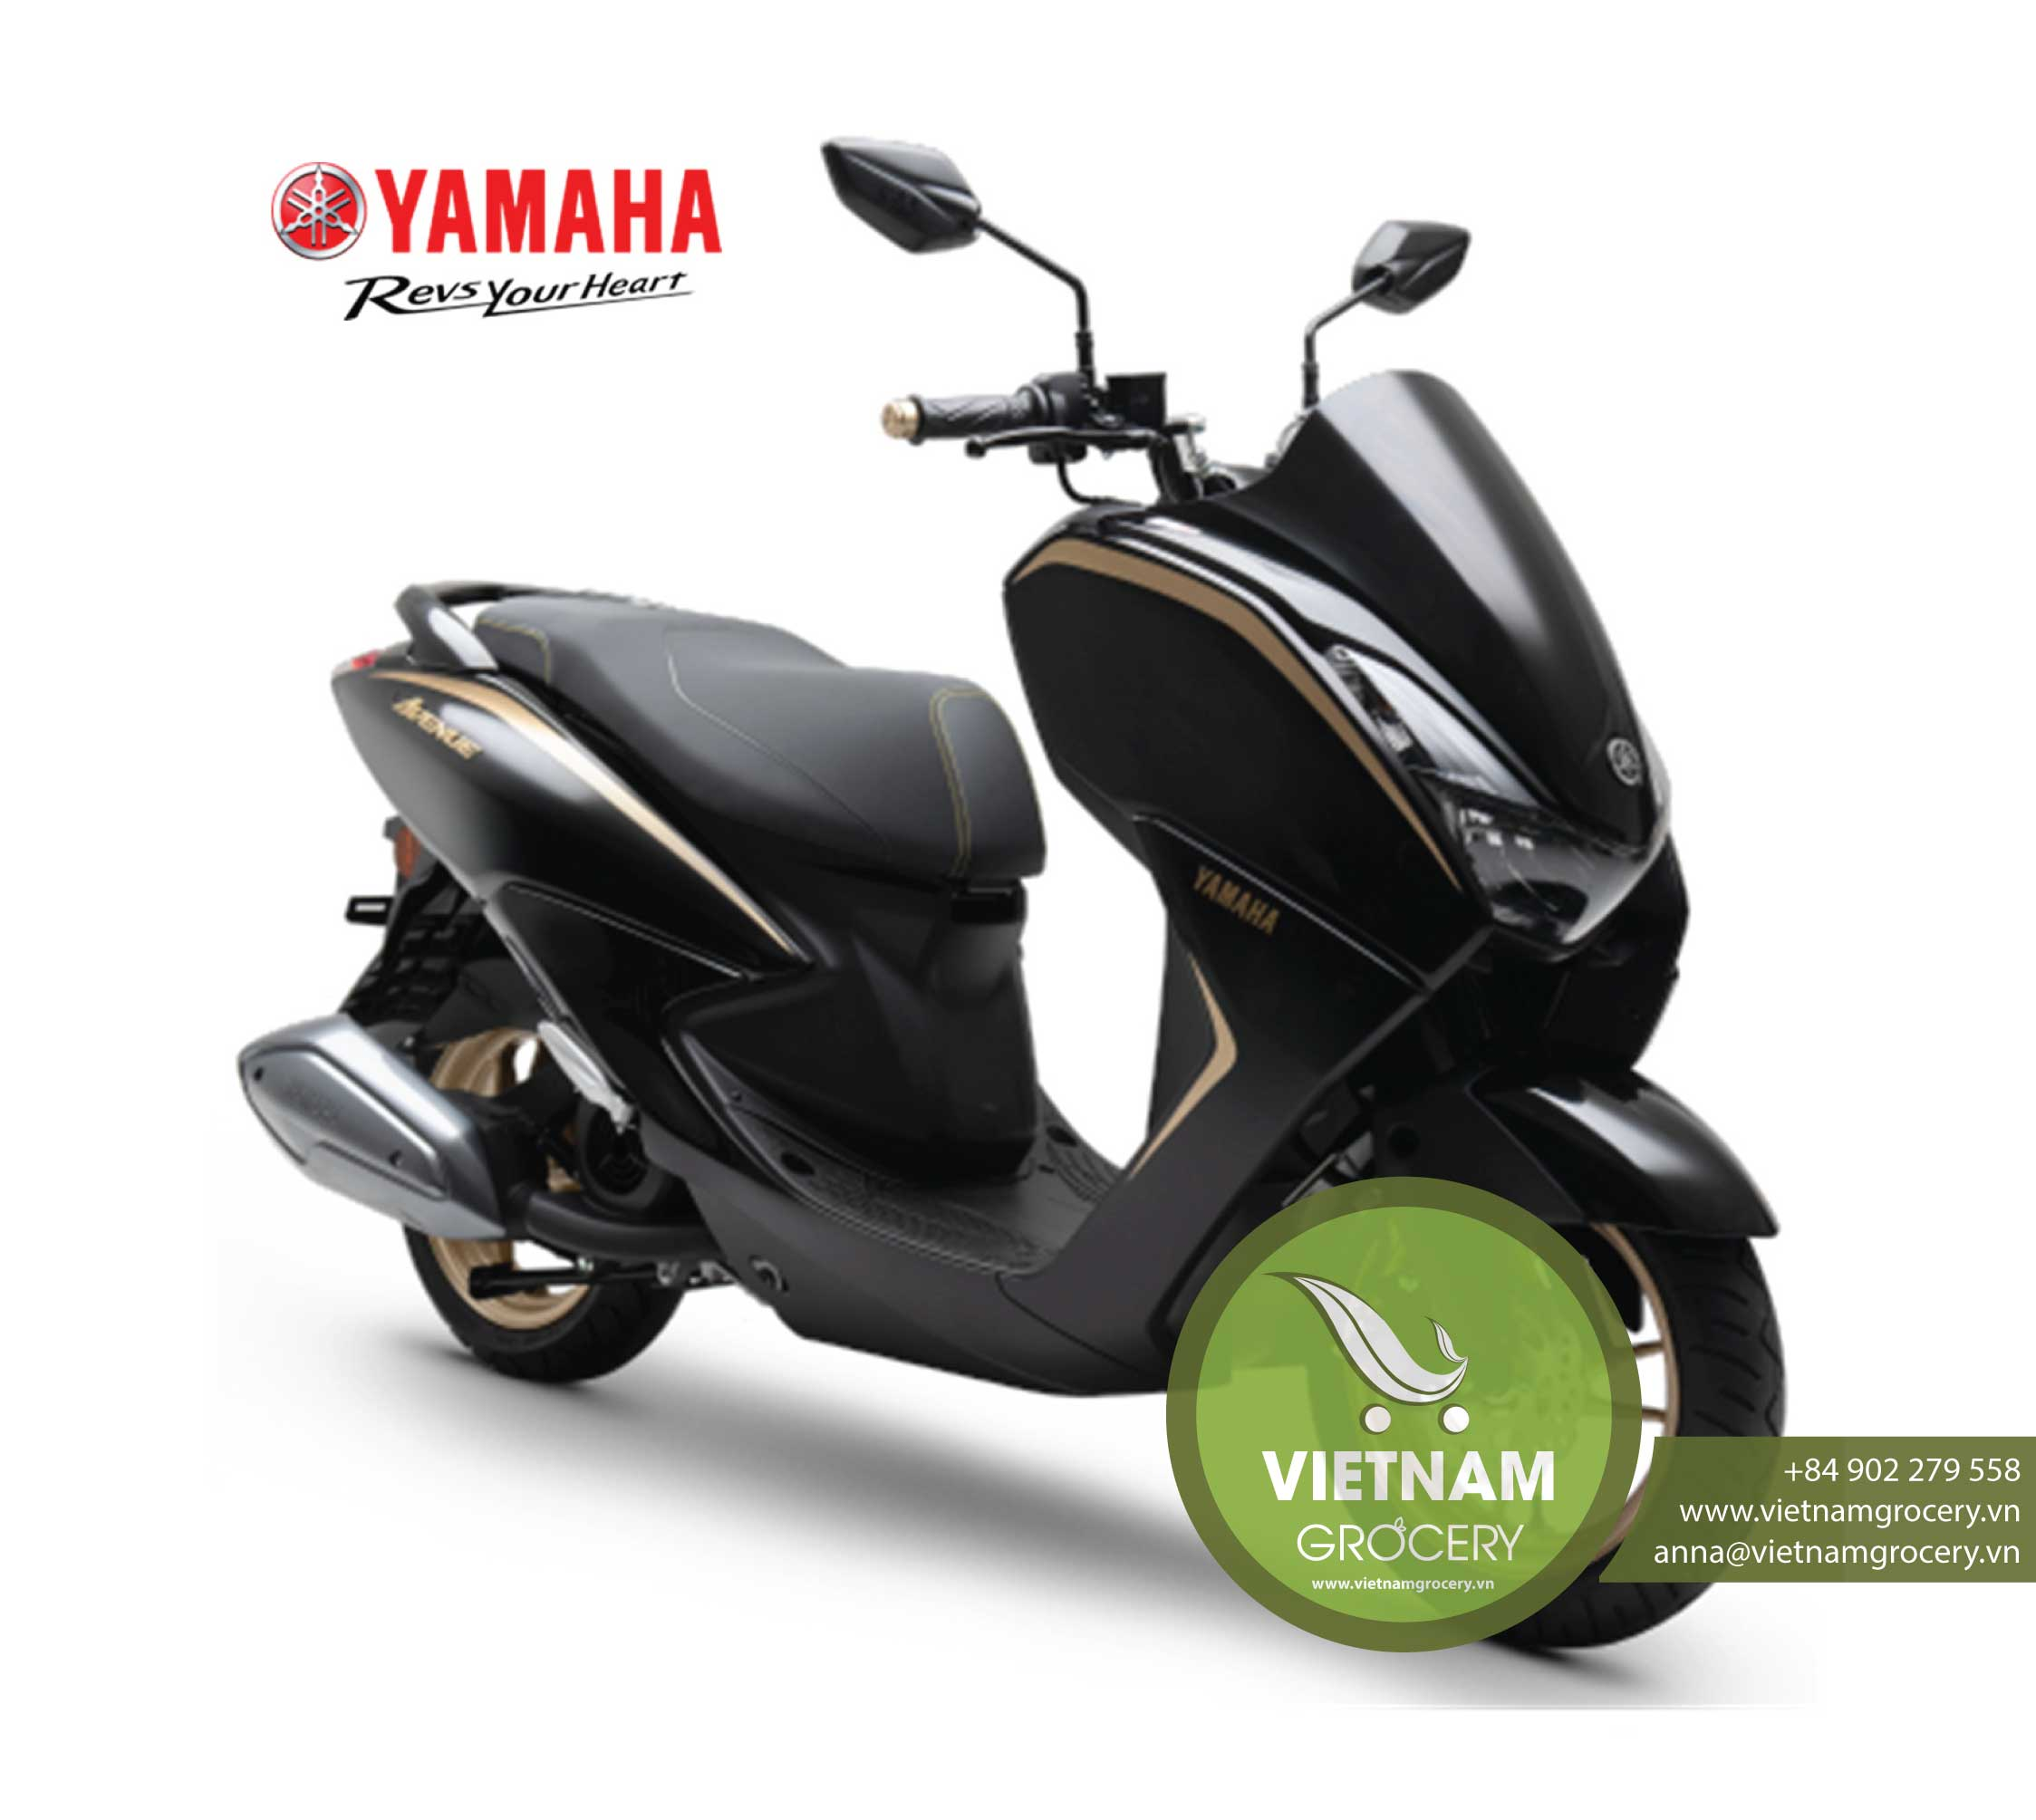 Brand New Yama ha Scooter Avenue 125 Nmax Lexi Free Go Motorcycle